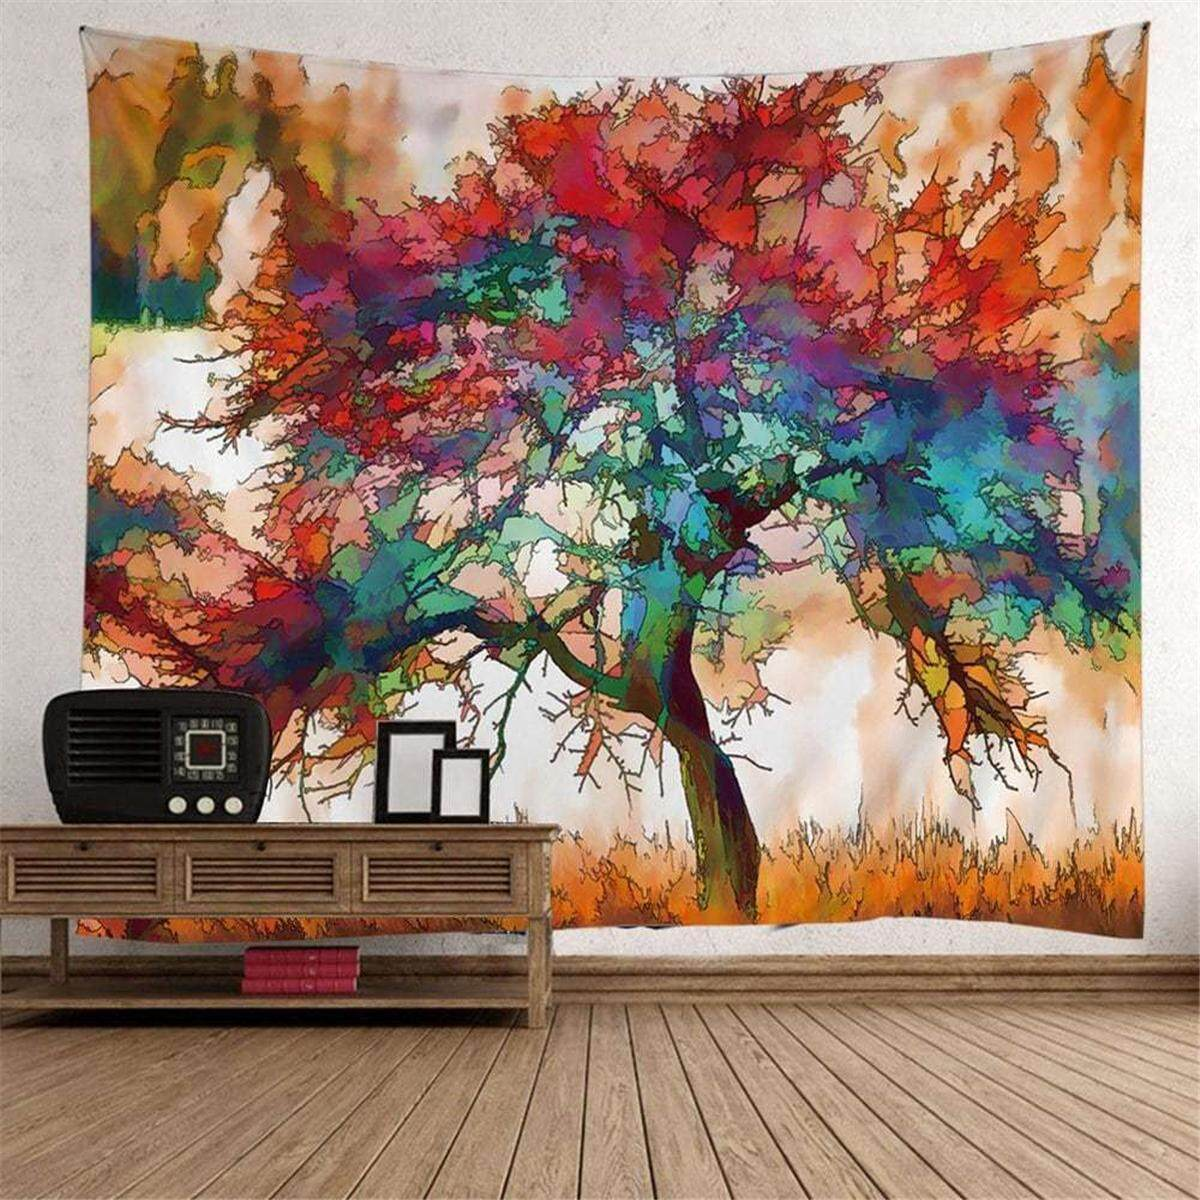 150cm x 130cm Watercolor Art Tree Print Tapestry Wall Hanging Decorative Tapestry Home Decor